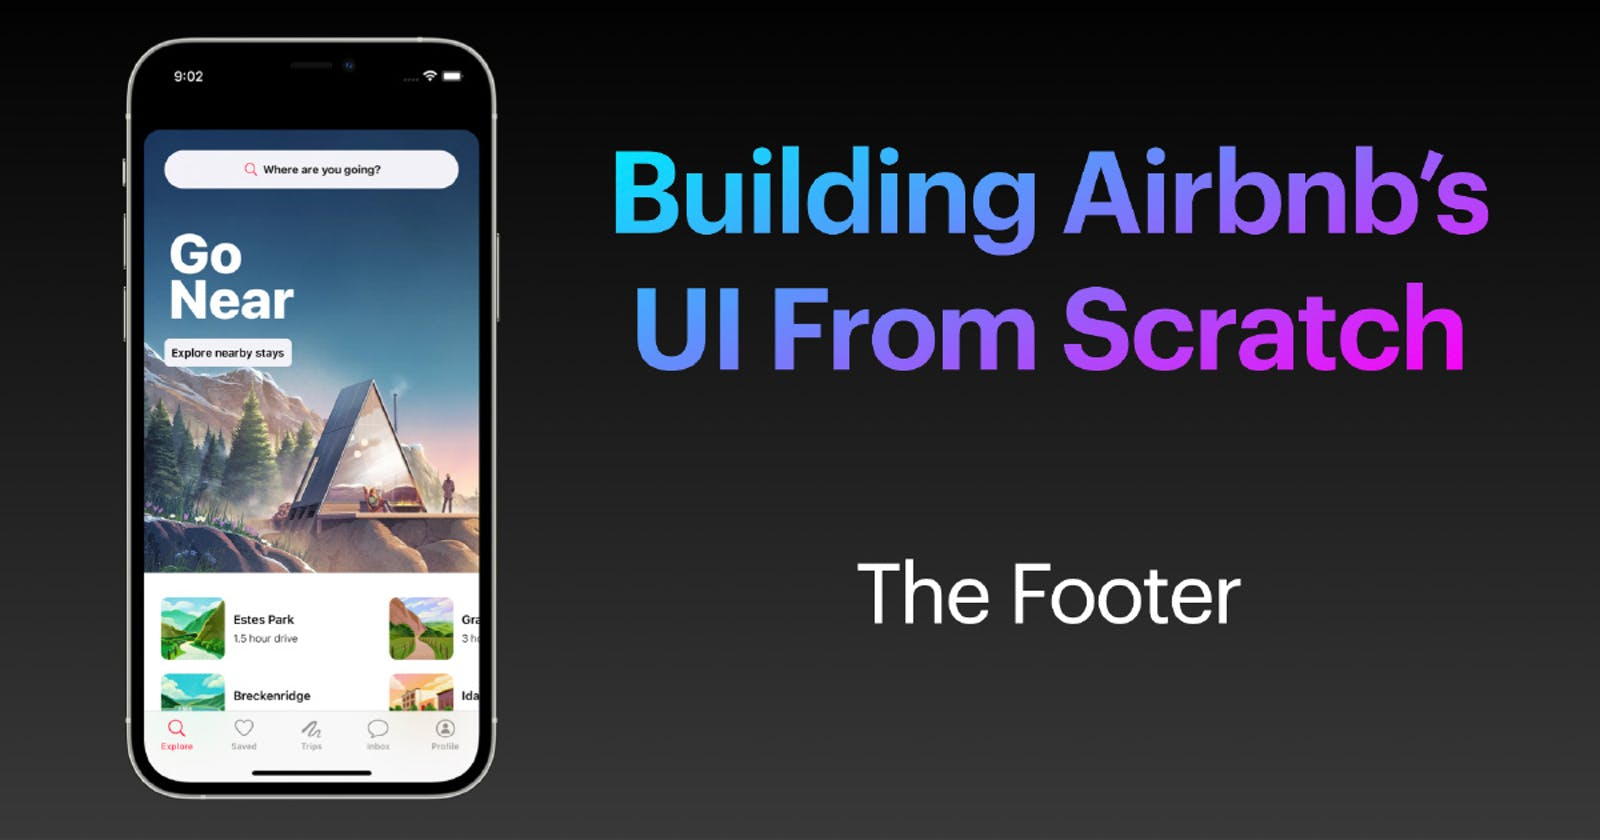 Building Airbnb's UI From Scratch - Part 5